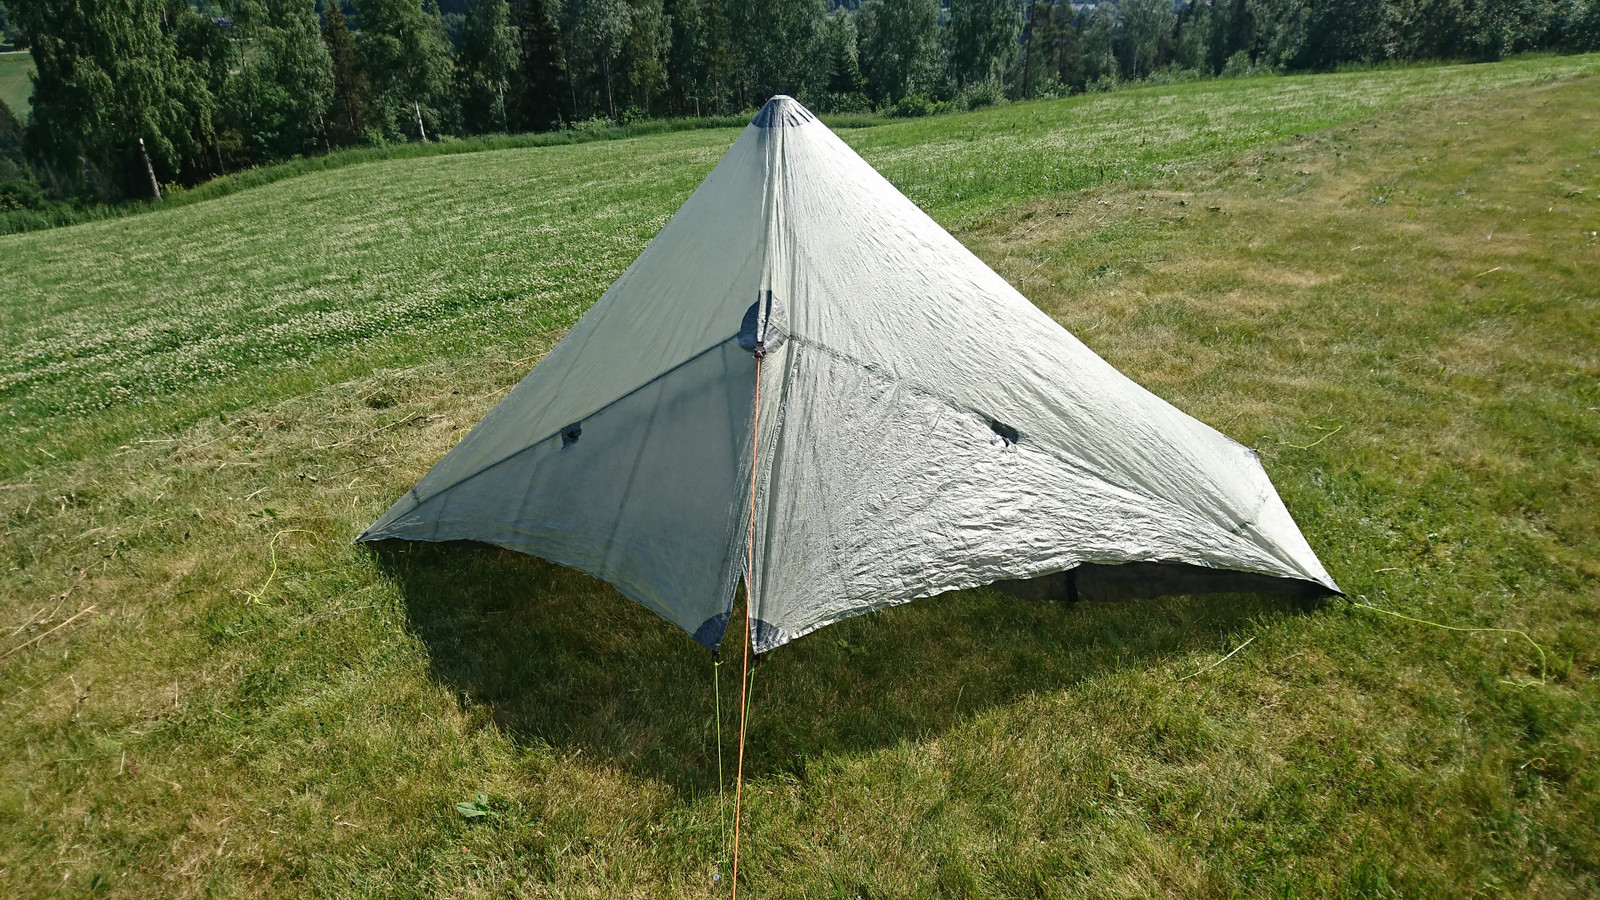 Zpacks Hexamid Solo tent ultralight | FINN.no